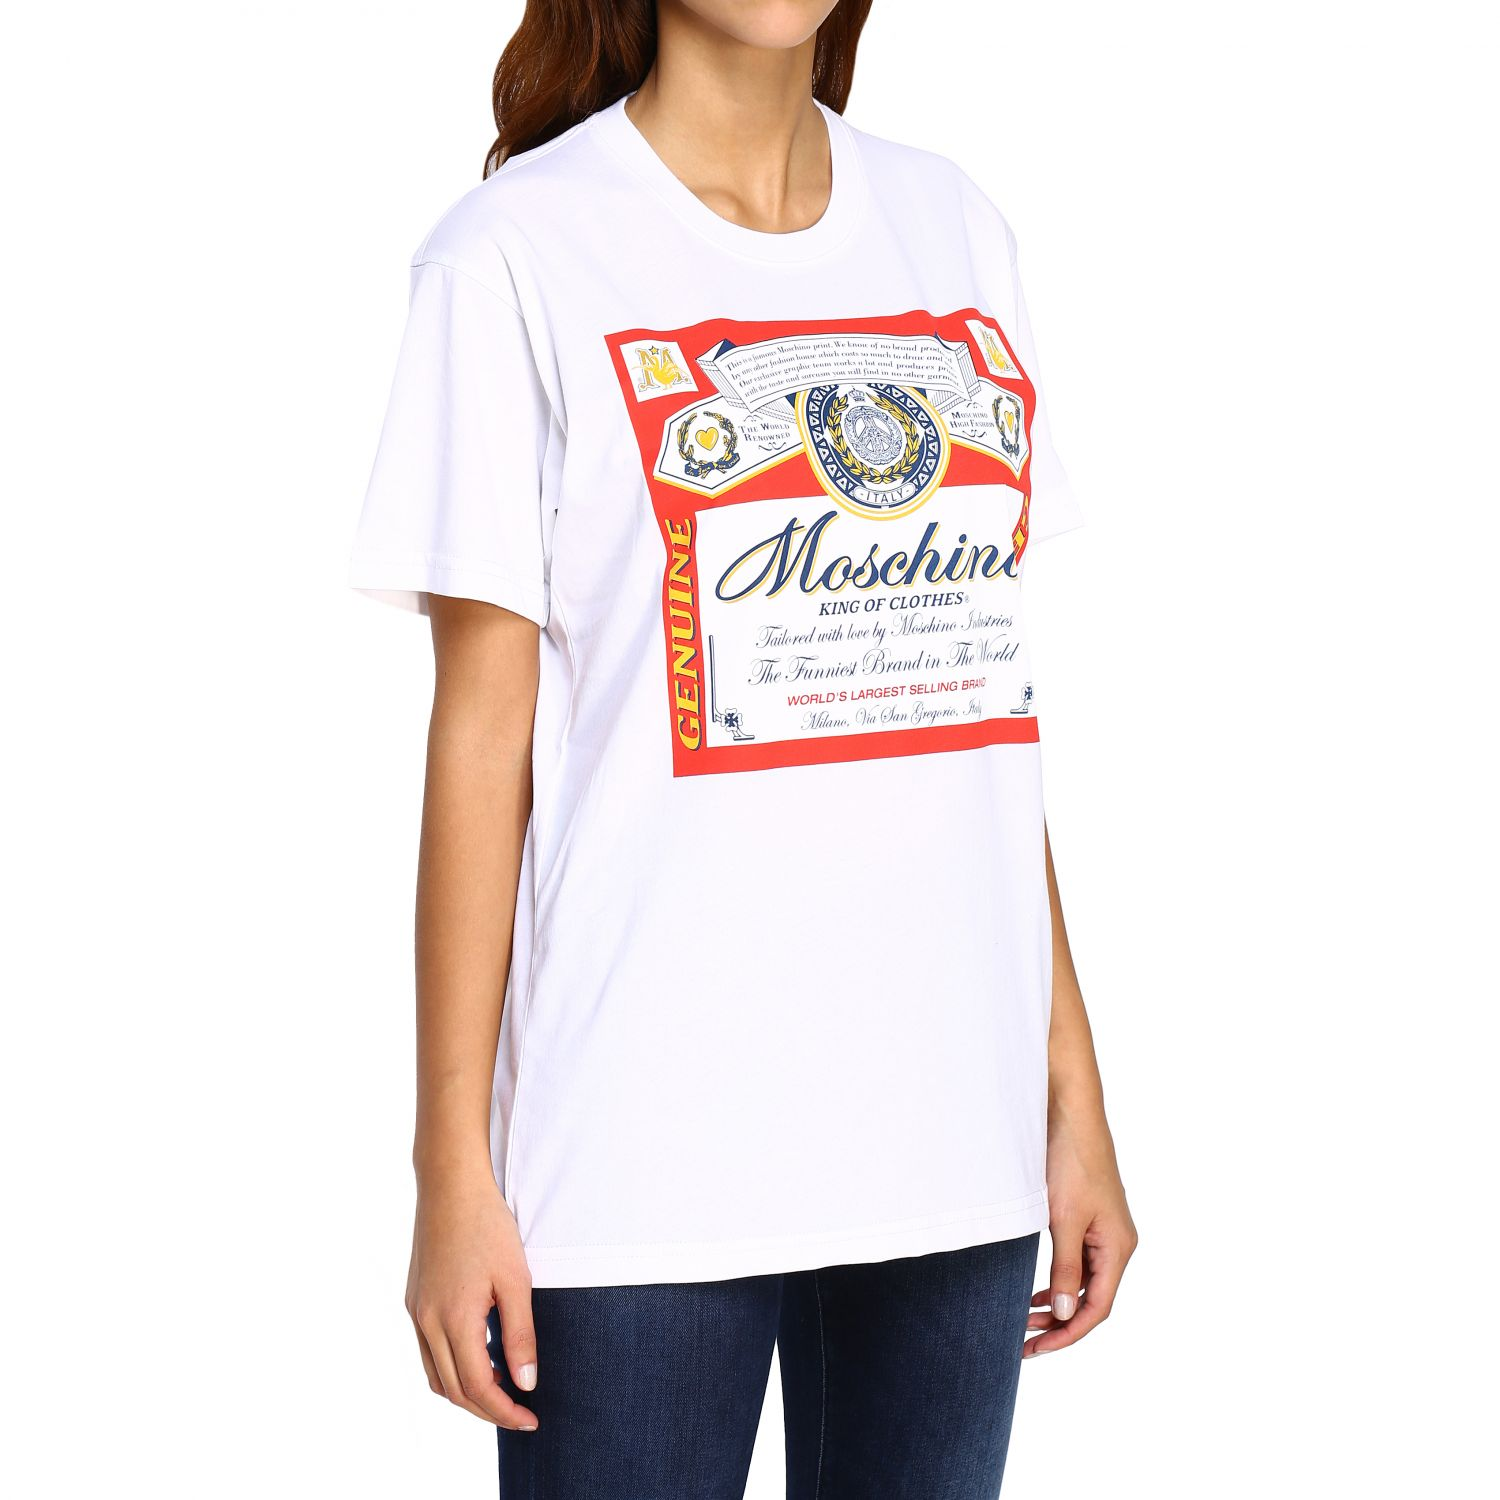 T-shirt Capsule Collection Moschino X Budweiser in jersey di cotone bianco 5